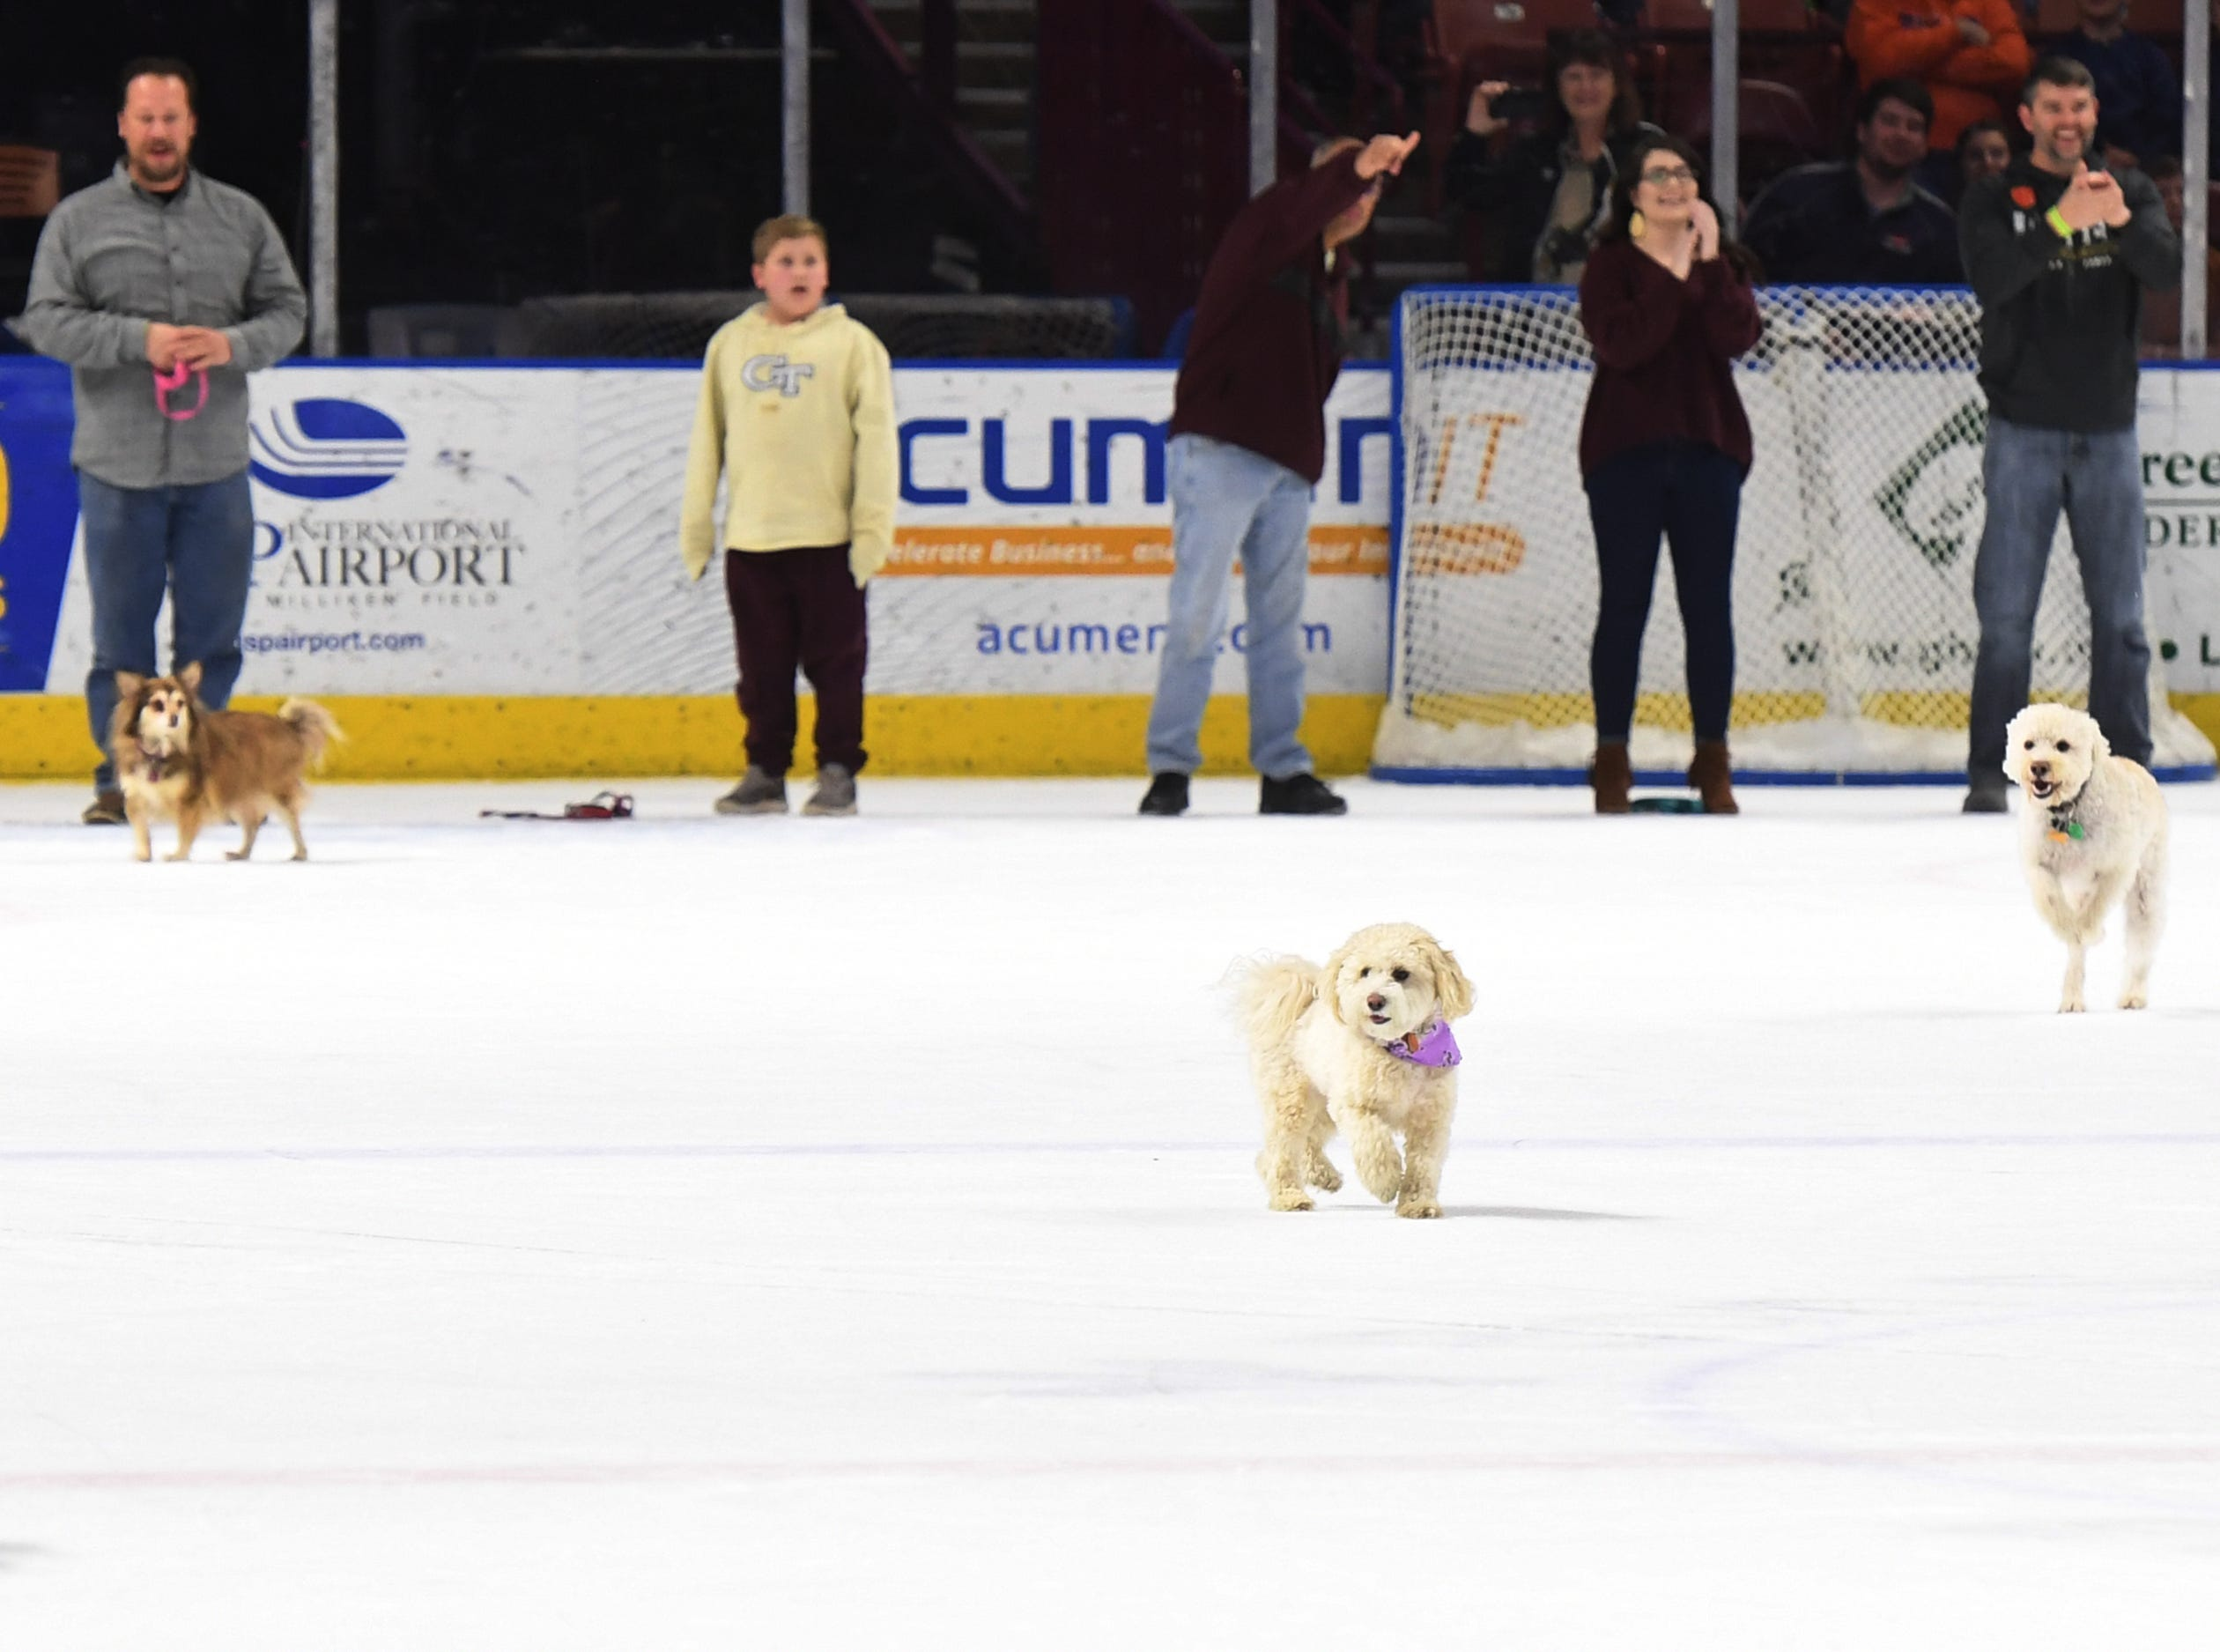 Dogs race on the ice at intermission of the Greenville Swamp Rabbits game against the Florida Everblades Saturday, Feb. 2, 2019. Saturday was Pucks N' Paws night at Bon Secours Wellness Arena.